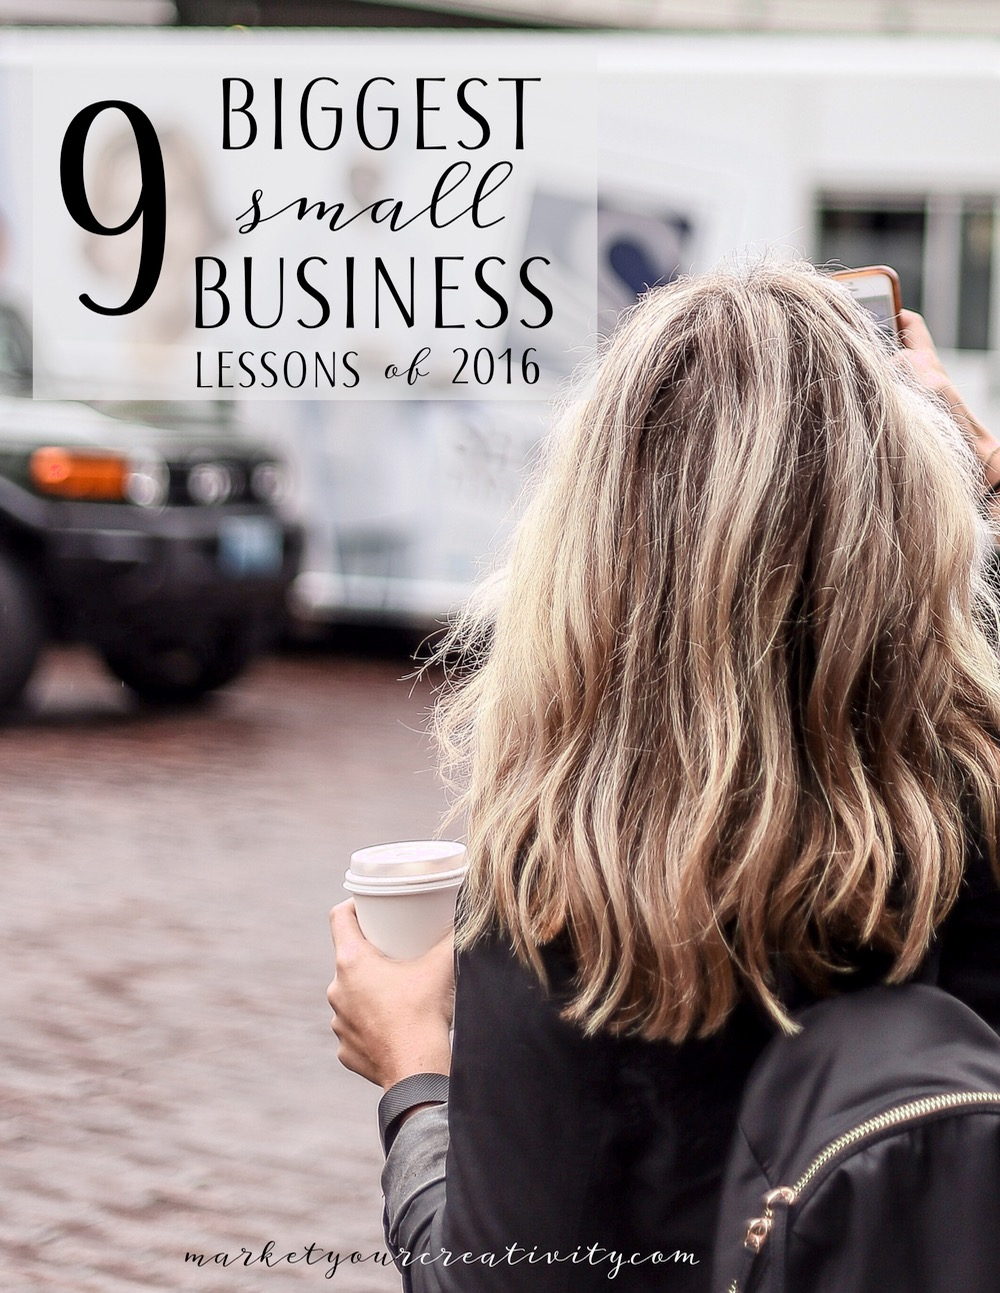 9 biggest small business lessons of 2016